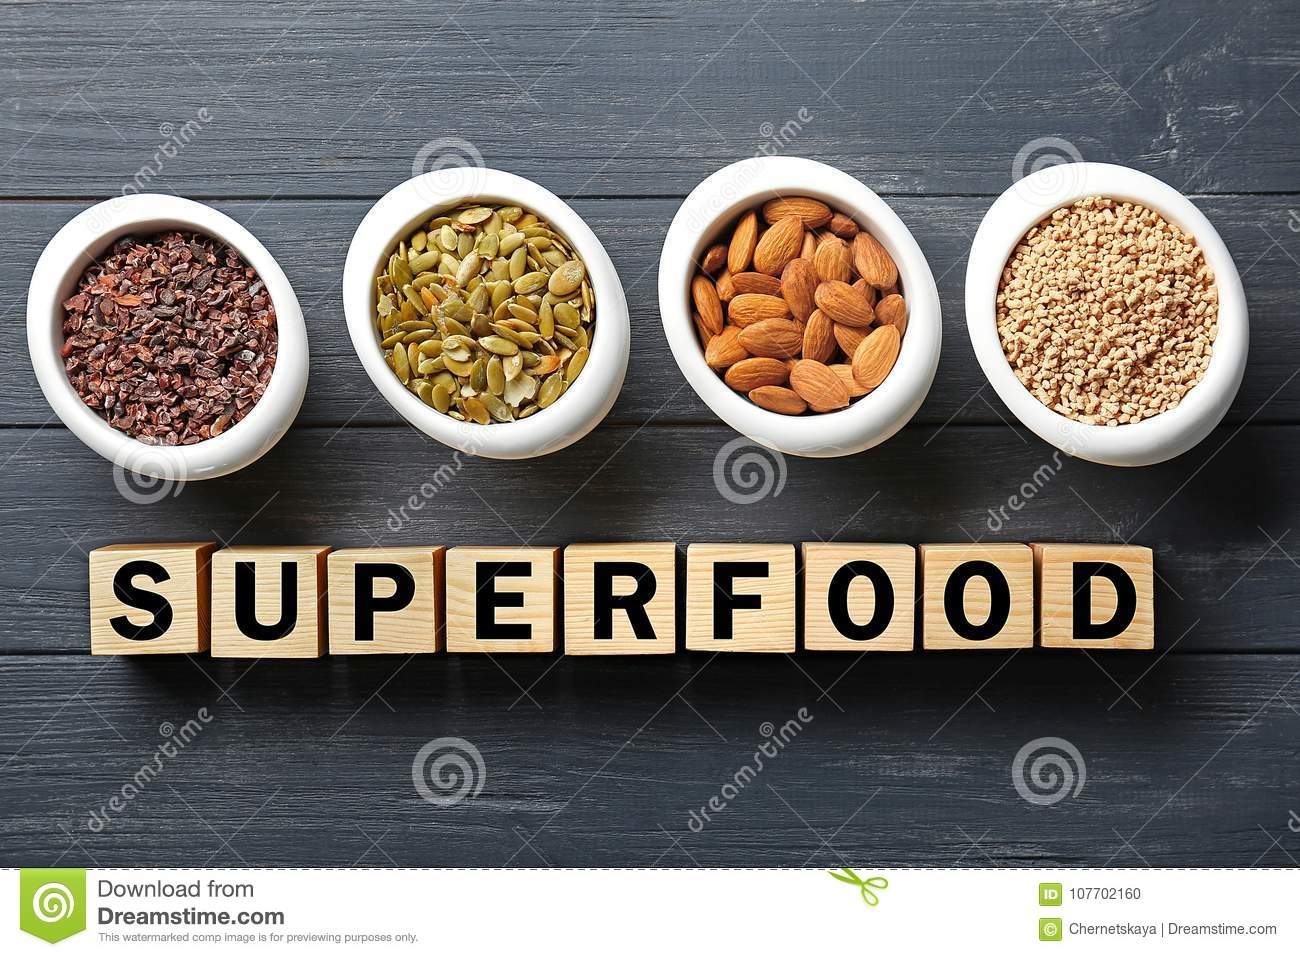 Composition with cubes and assortment of superfood products in bowls on wooden background,